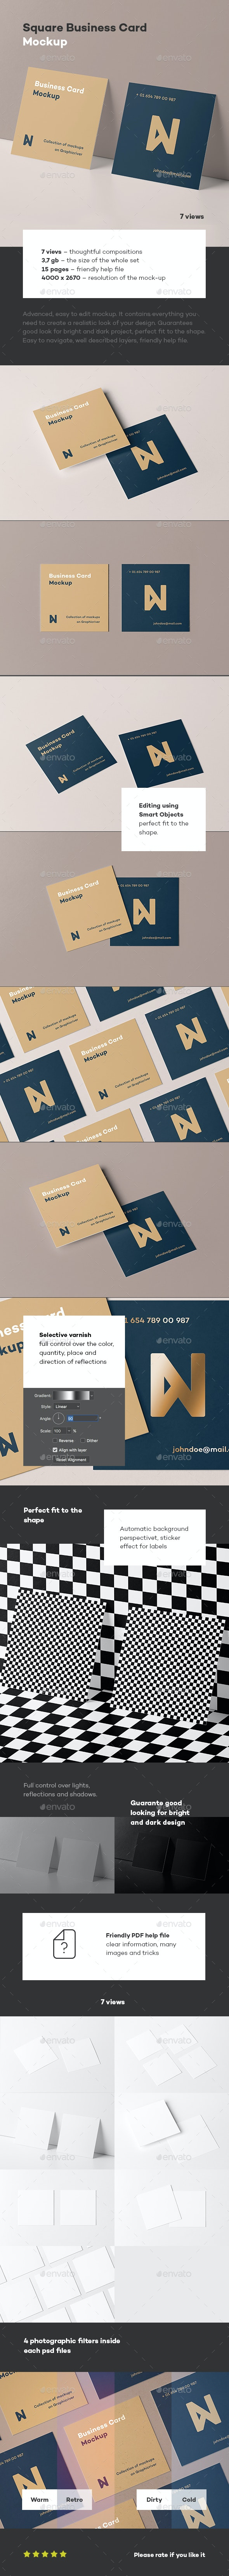 Square Business Card Mock-up - Business Cards Print